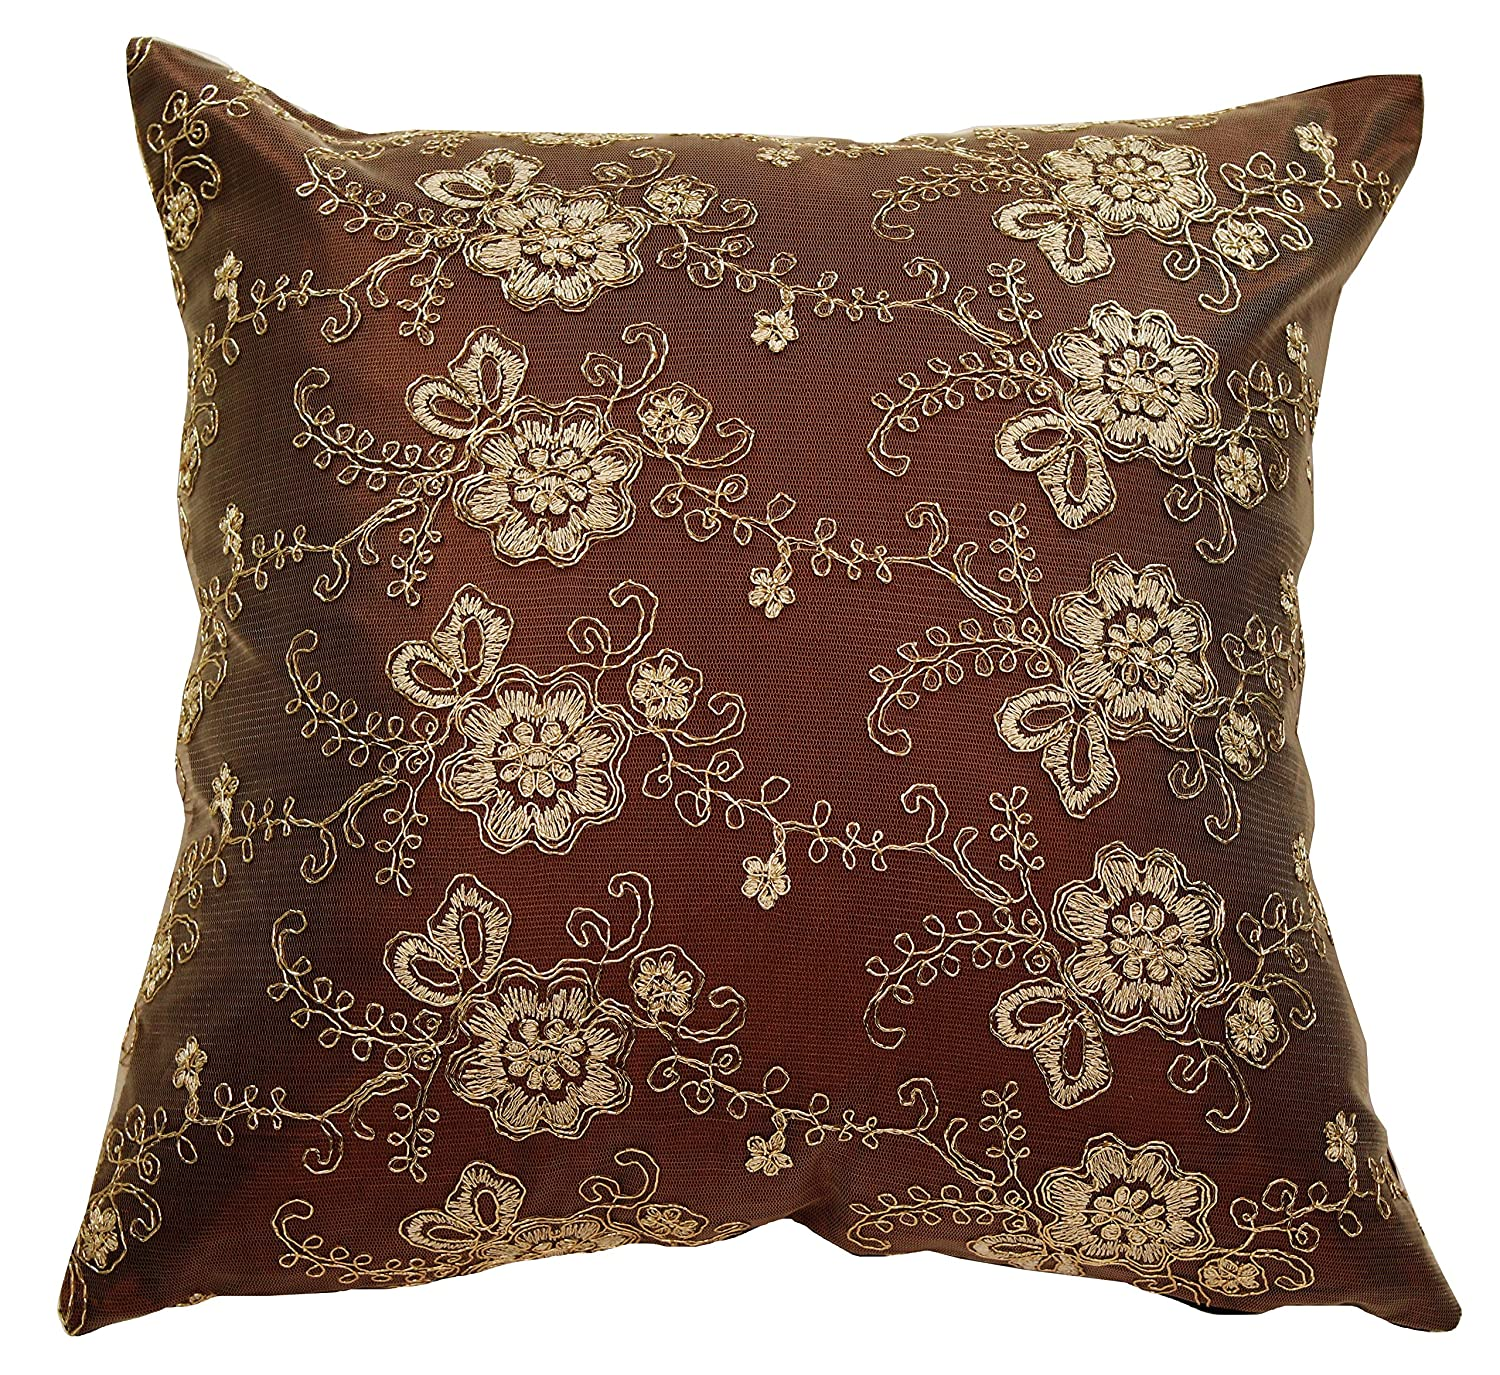 "Swiss Embroidered Flowers Vintage Design 18"" X 18"" Throw Pillow - In Brown"